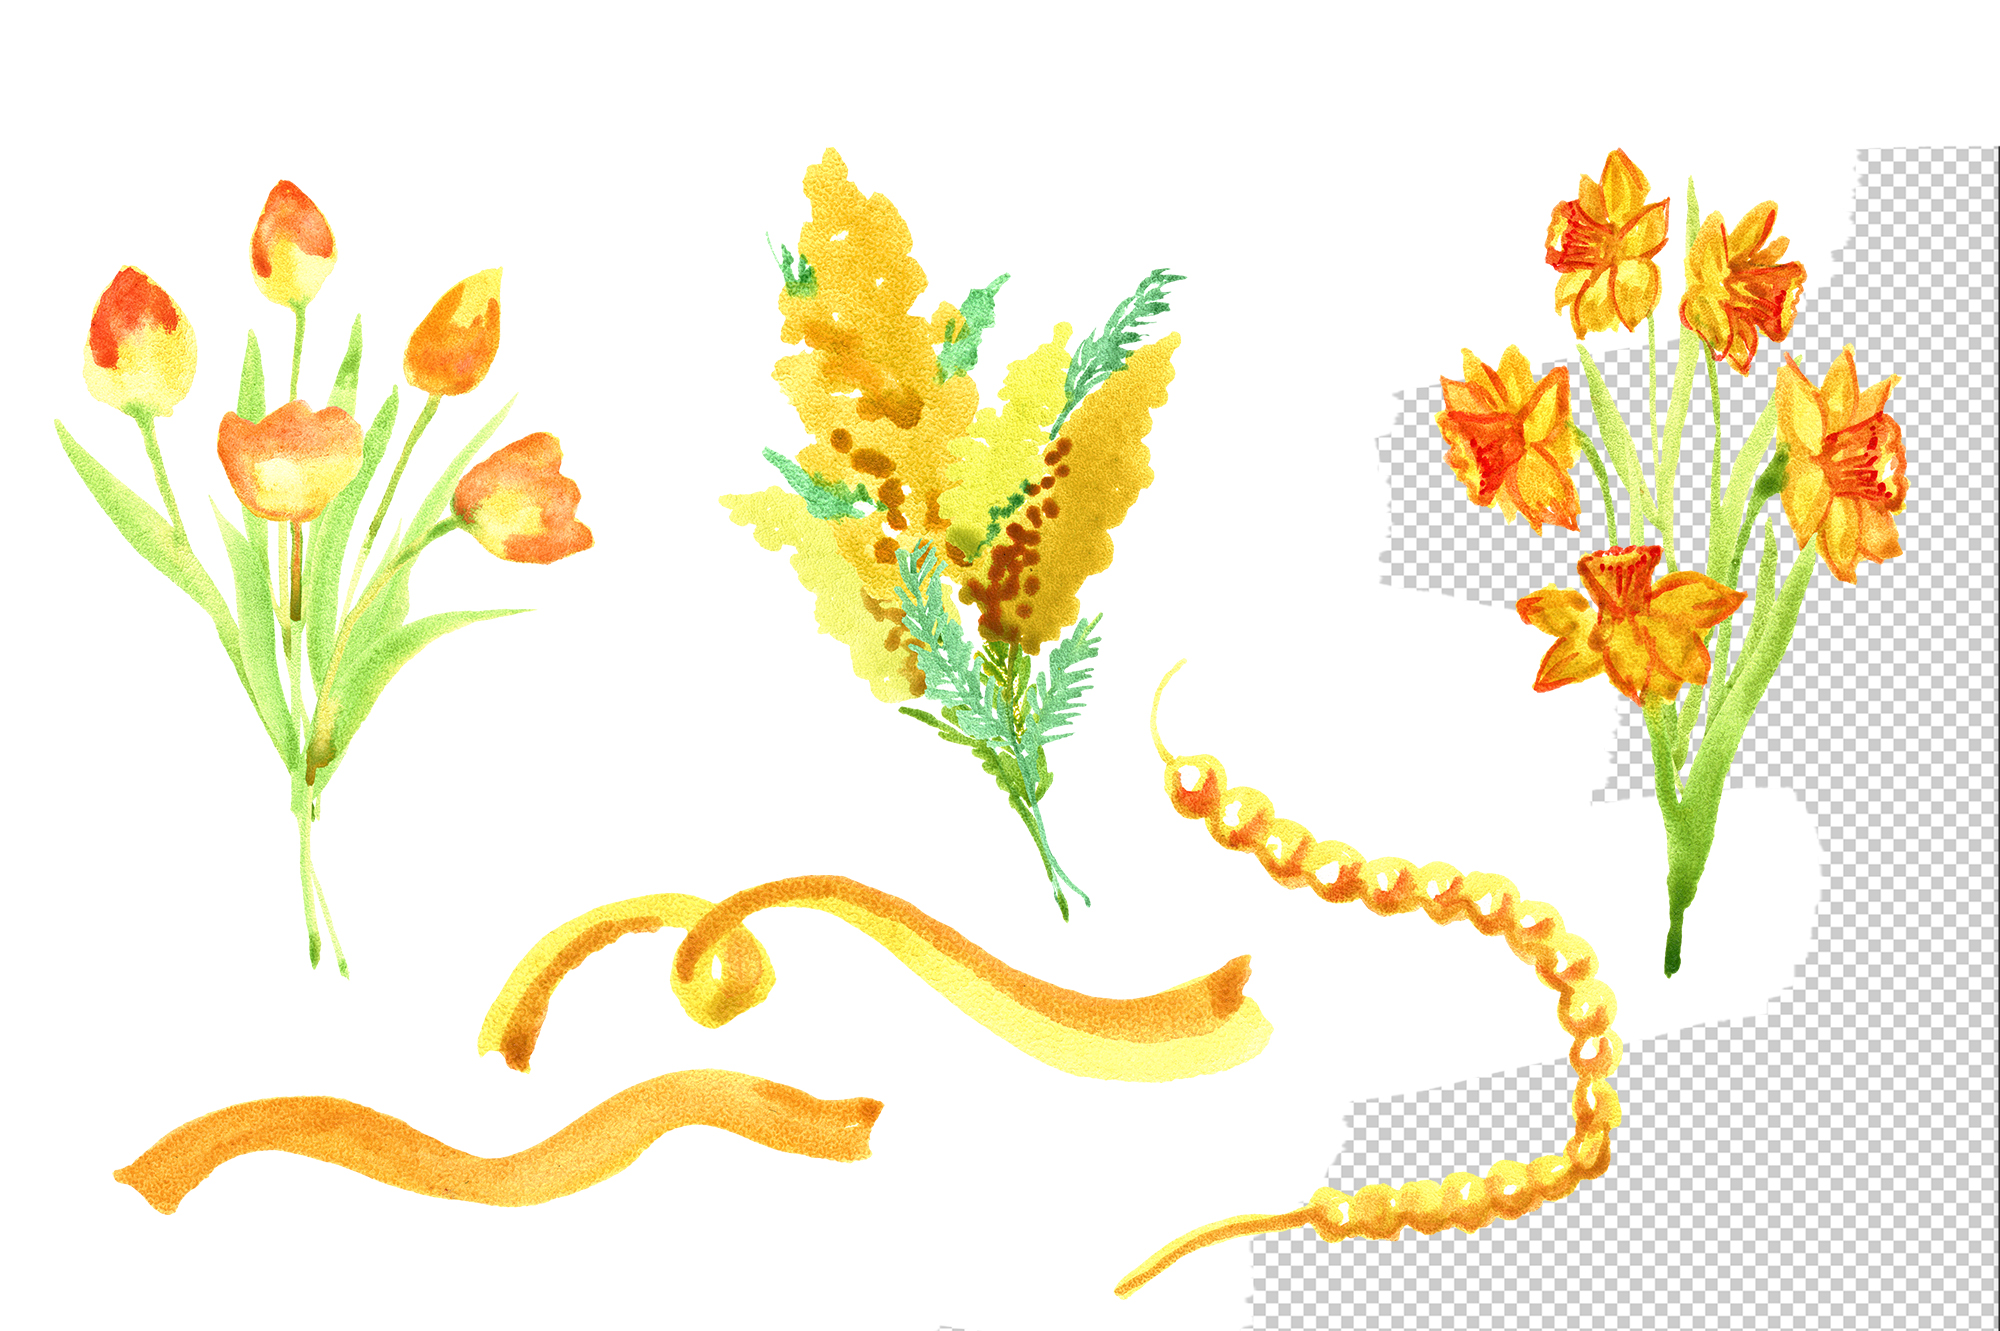 Watercolor yellow spring flowers example image 3